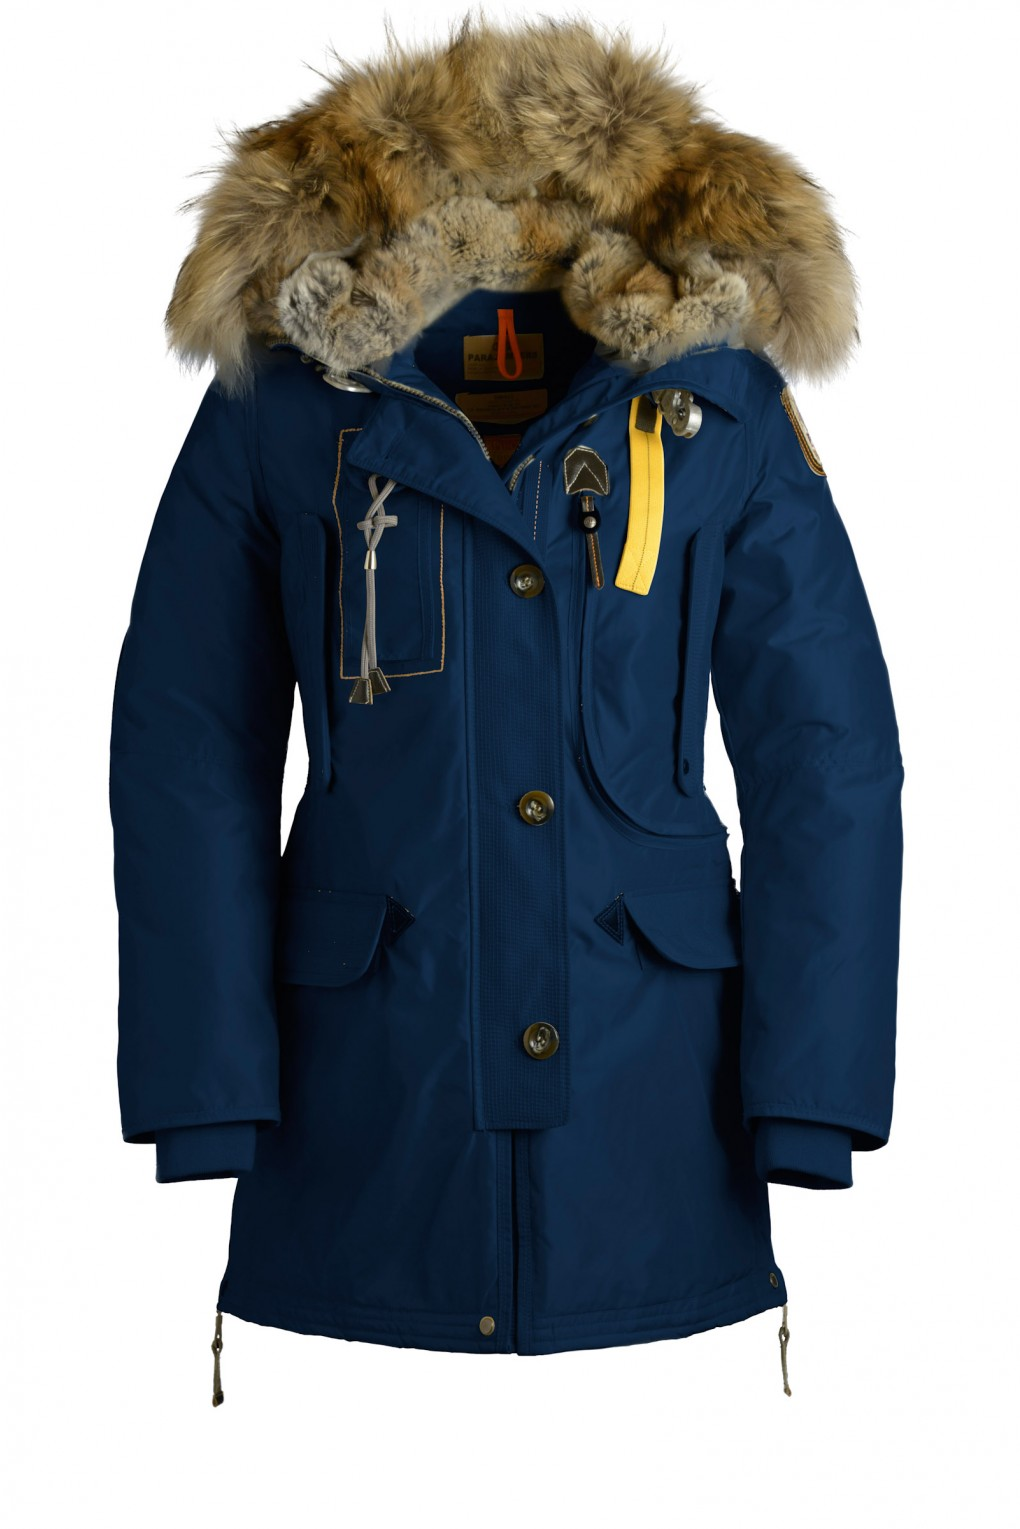 parajumpers KODIAK woman outerwear Royal